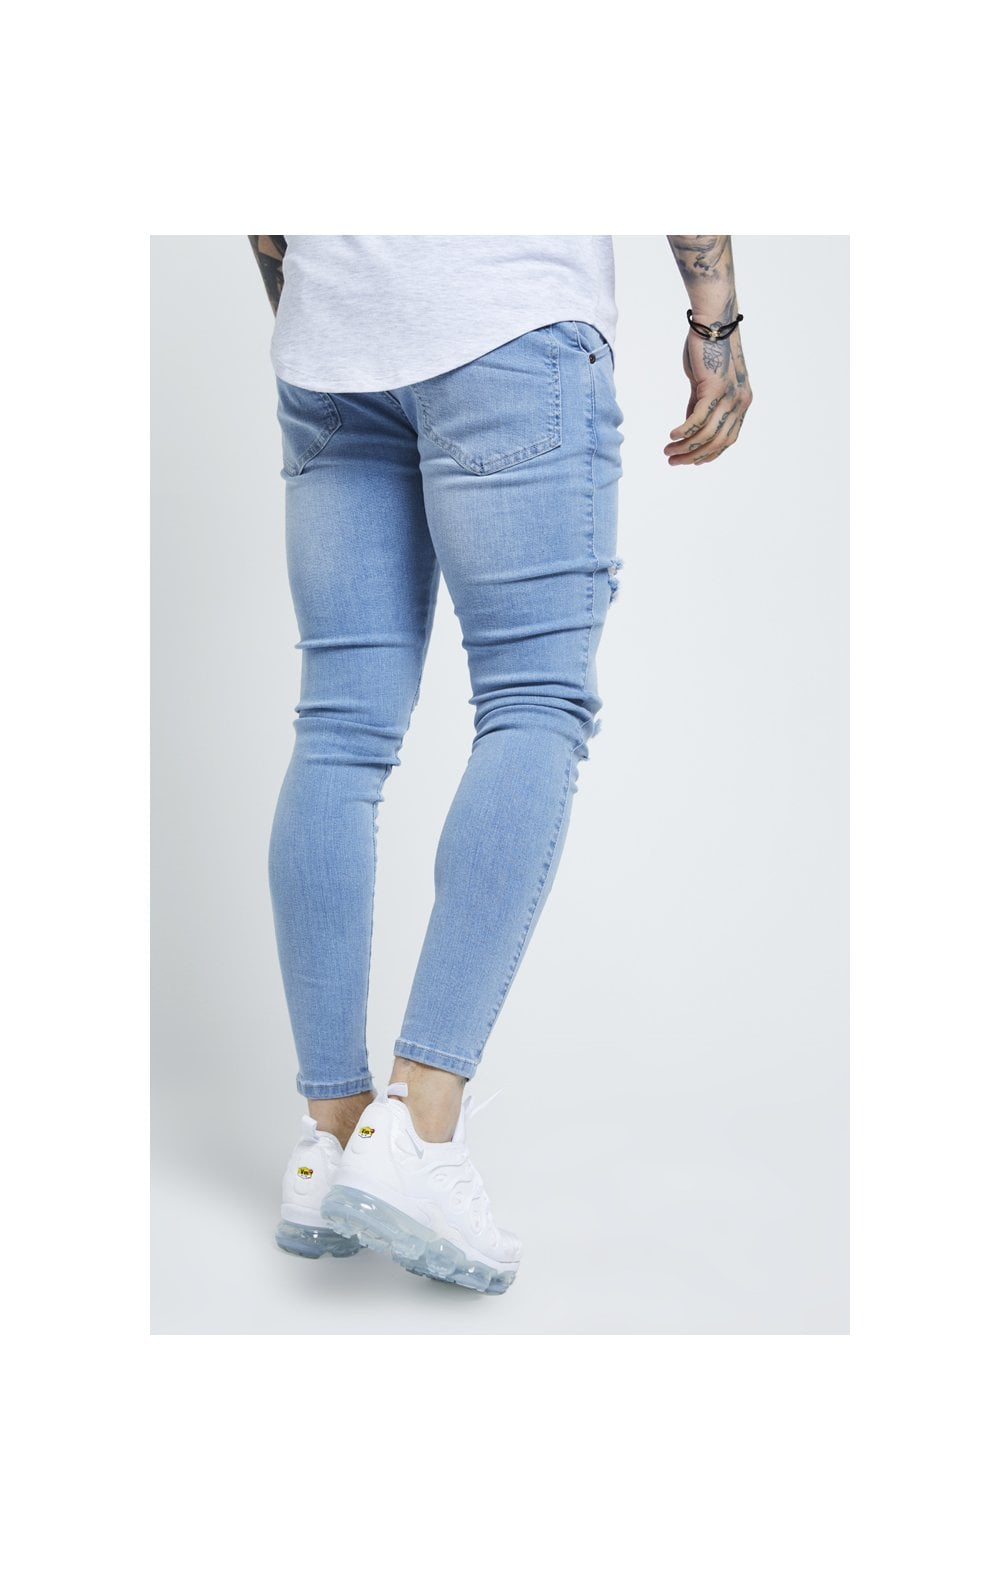 Load image into Gallery viewer, SikSilk Distressed Skinny Jeans – Light Wash (2)